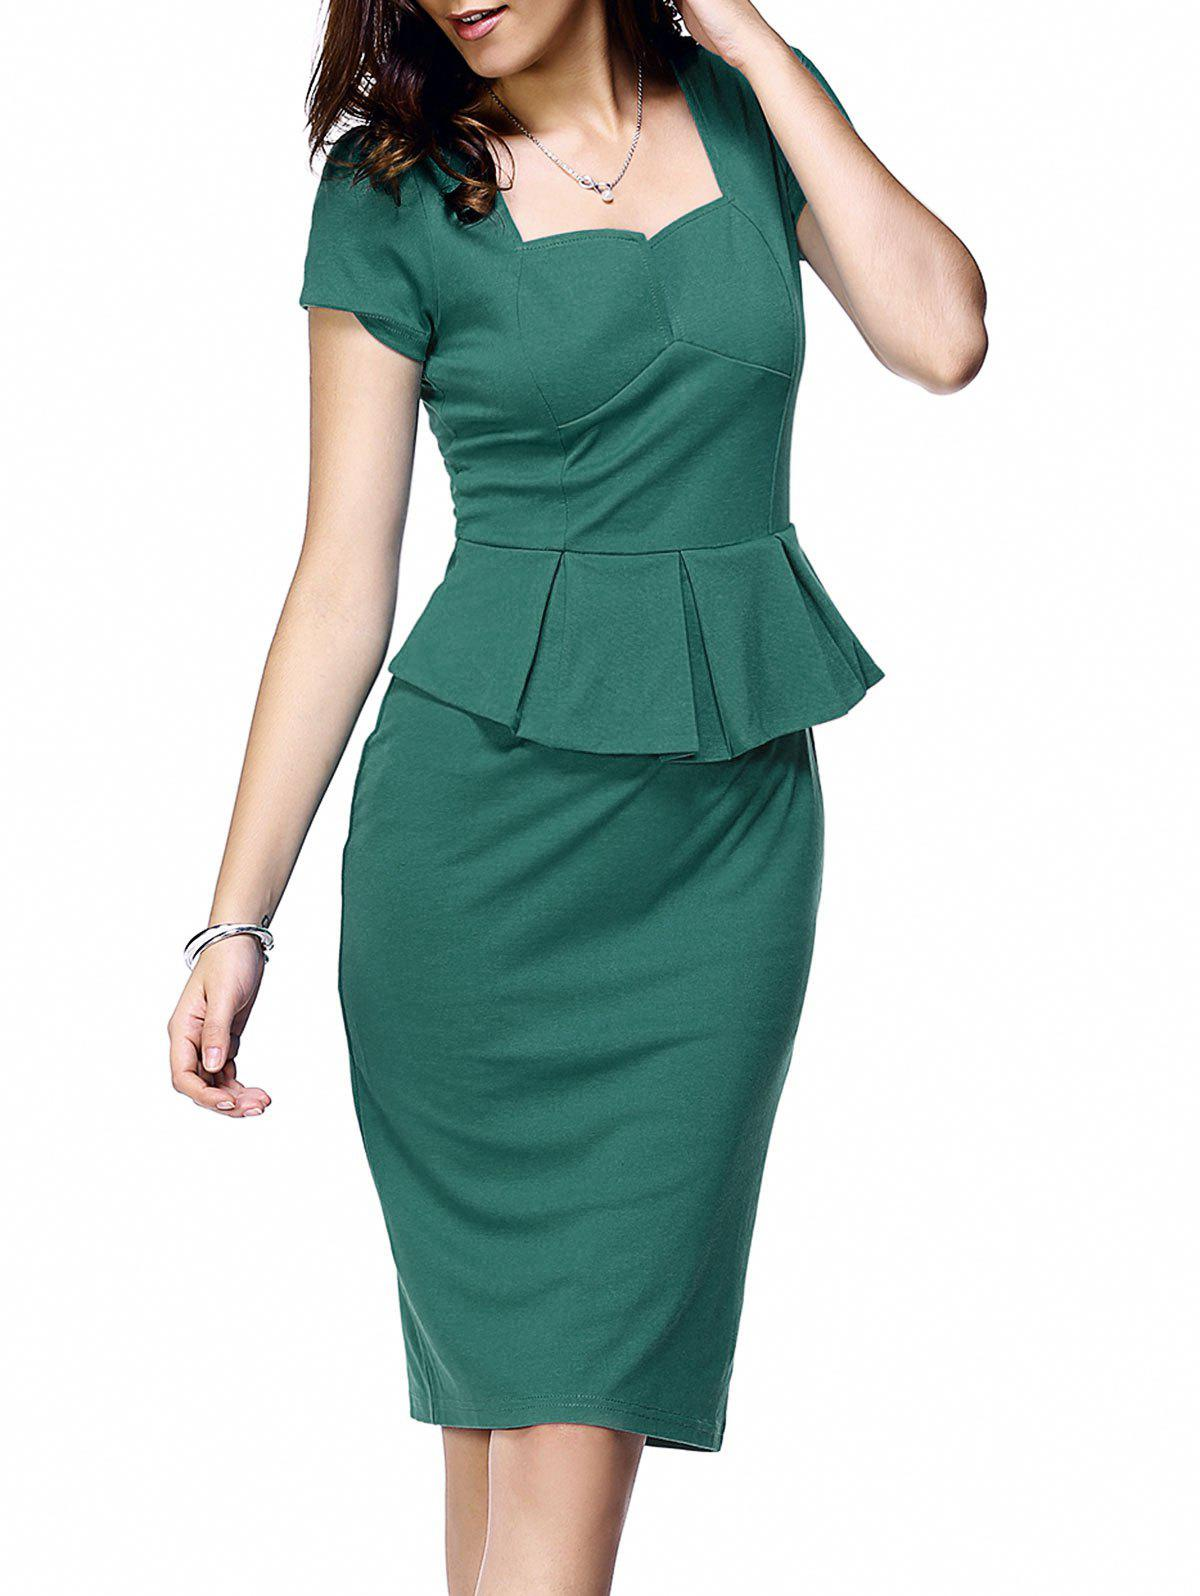 Elegant Short Sleeve Flounce Waist Women's Bodycon Dress - LAKE GREEN 2XL